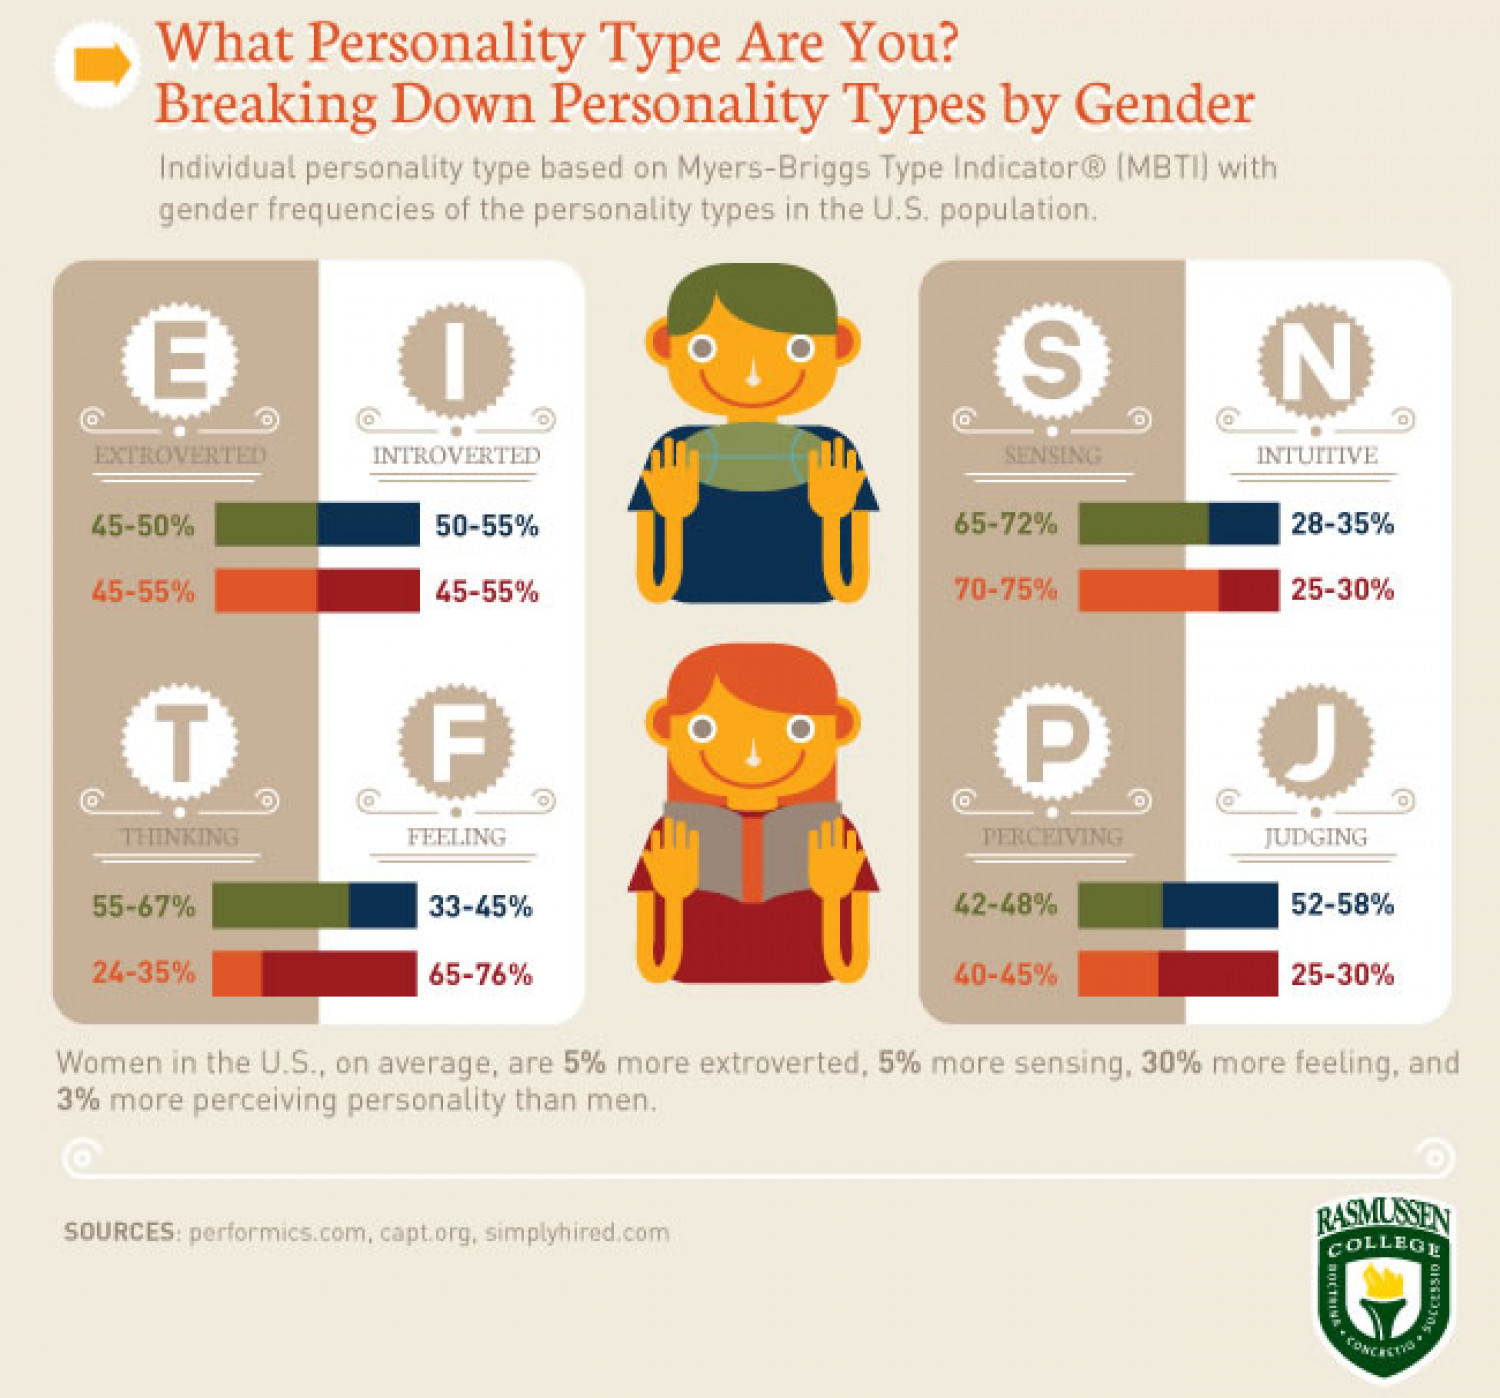 What Personality Type Are You? Infographic